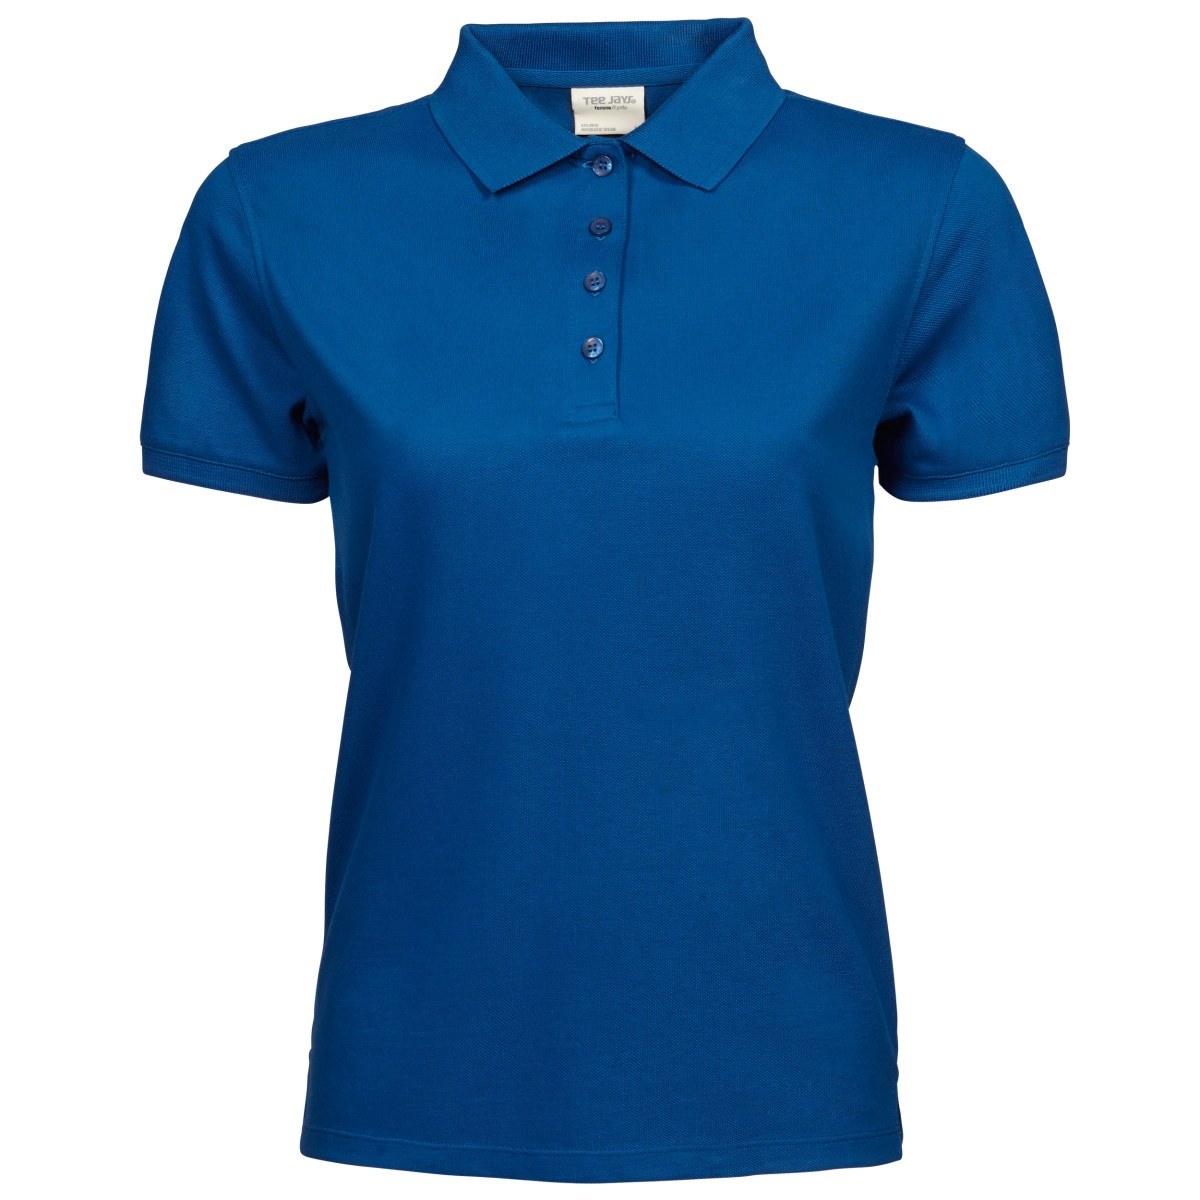 Tee Jays Womens Ladies Heavy Short Sleeve Polo Shirt Ebay